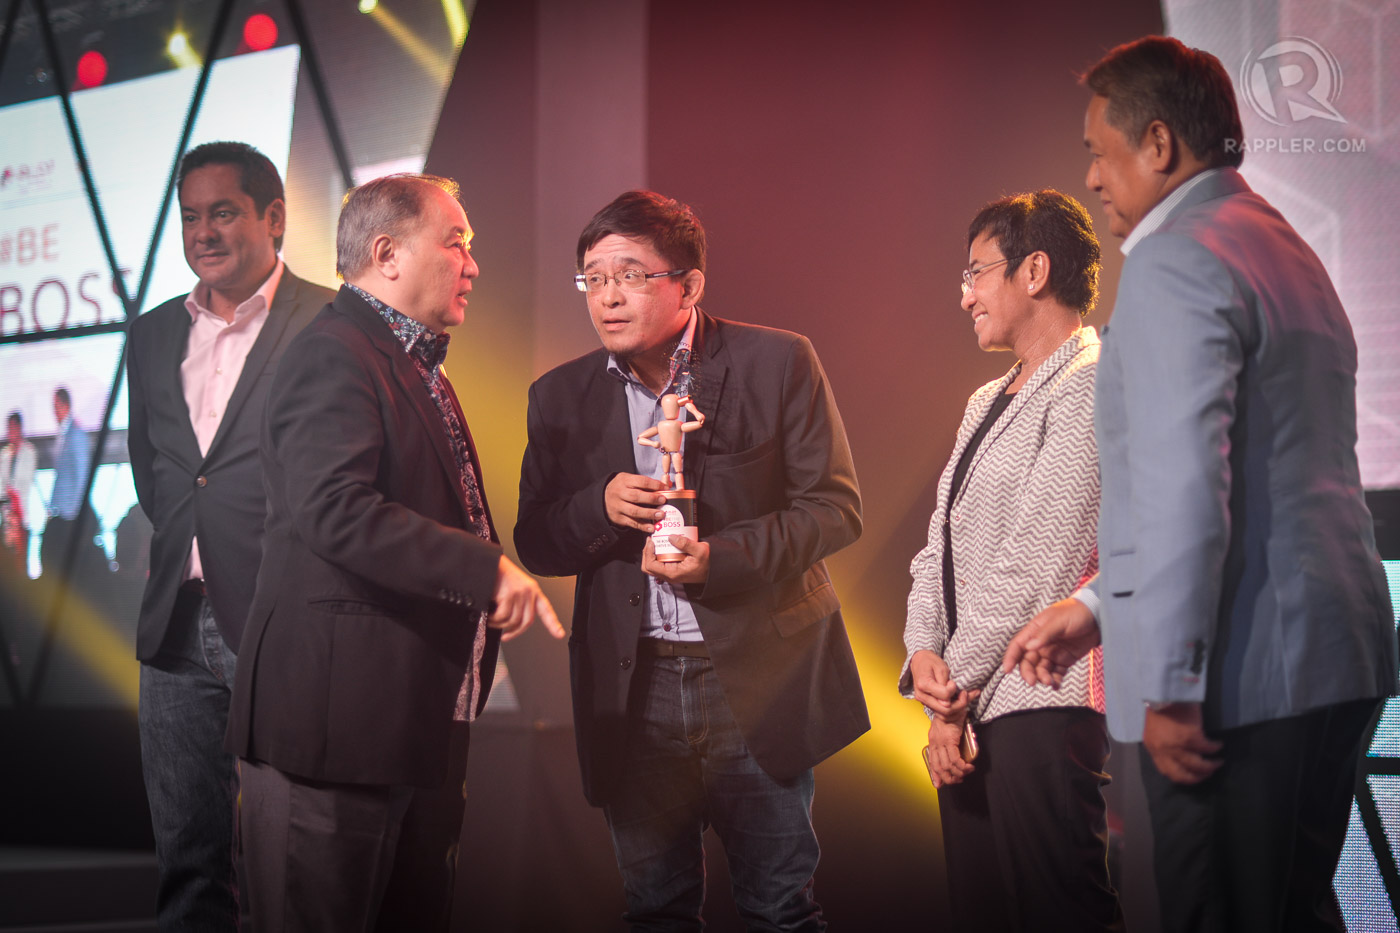 BOSS FOR INNOVATIVE SOLUTIONS. Matthew Cua (with trophy) and PLDT Smart Chairman Manual V. Pangilinan share a conversation while the #BeTheBoss judges look on